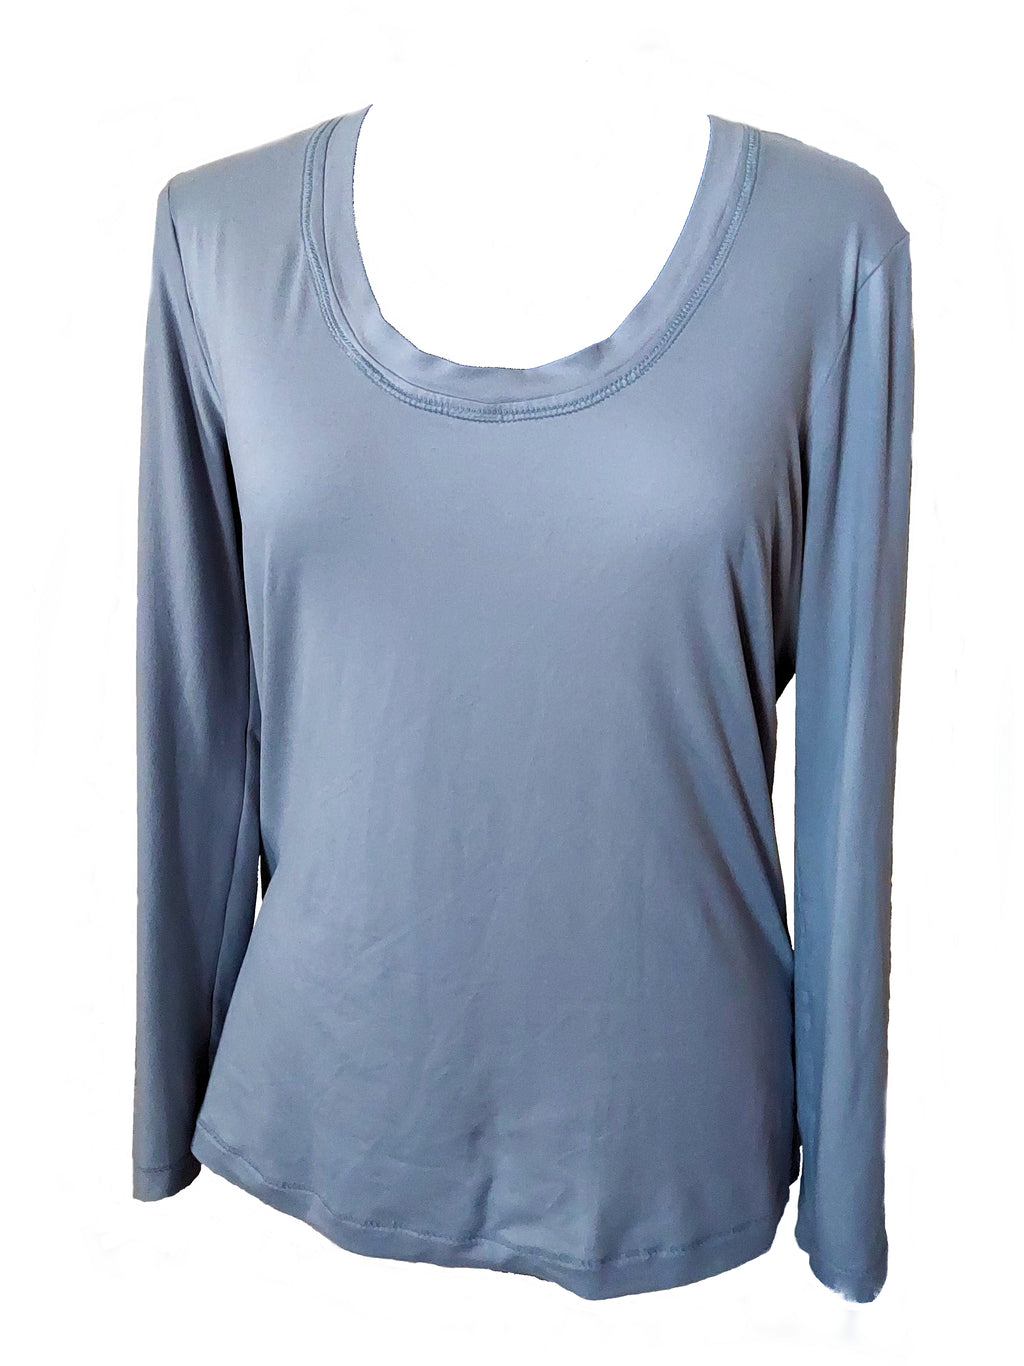 Silver Long Sleeve Shirt. The shirt is on a mannequin showing the front of the shirt.